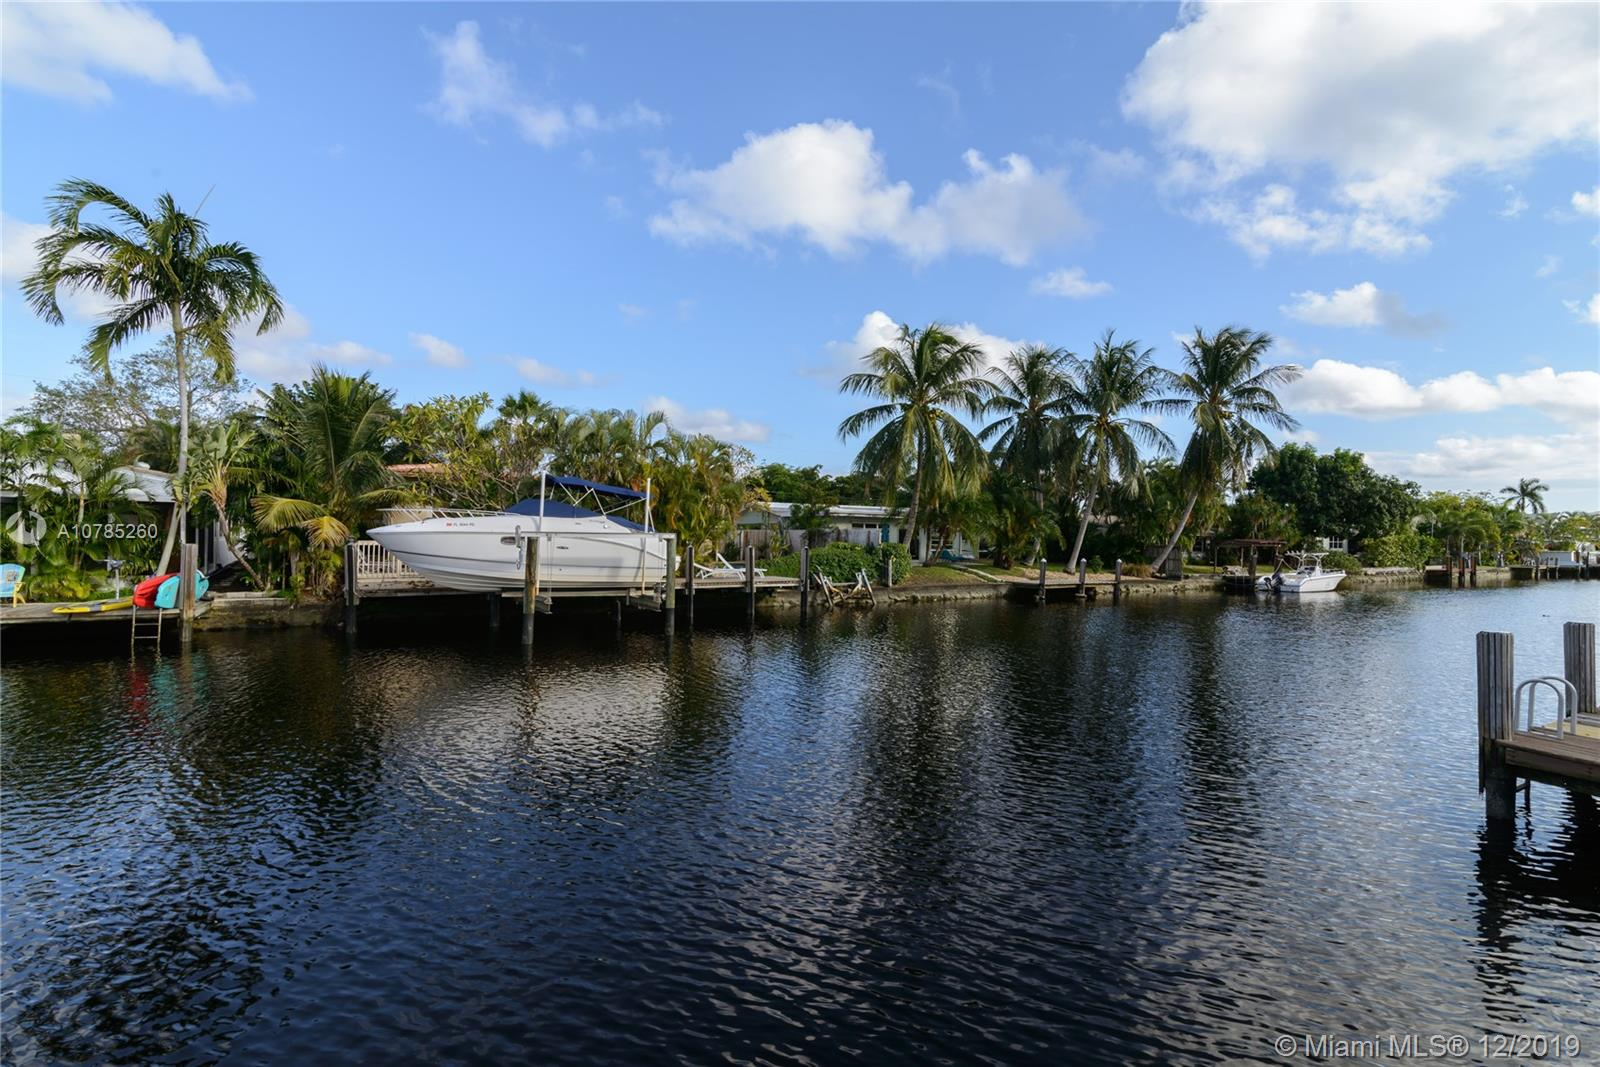 """Waterfront Home with Ocean Access. Great location in the Heart of Wilton Manors. Boat Lift and 30' dock set on an 80' wide canal. Priced under market value- this home is a great buy for the right buyer looking for an ocean access home at an amazing price. Open concept with a great room perfect for entertaining with scenic water views. Large Kitchen with 42"""" cabinets and granite counter tops and stainless steel appliances. Tastefully remodeled with tile floors and a newer roof and hot water heater. Circular driveway and a 2 car carport allows parking for more then 6 cars. Perfect location- Beach, shopping, restaurants are less then 10 minutes away. This is a great price for a great home! Don't miss out!  SEE REQUIRED ATTACHMENTS"""